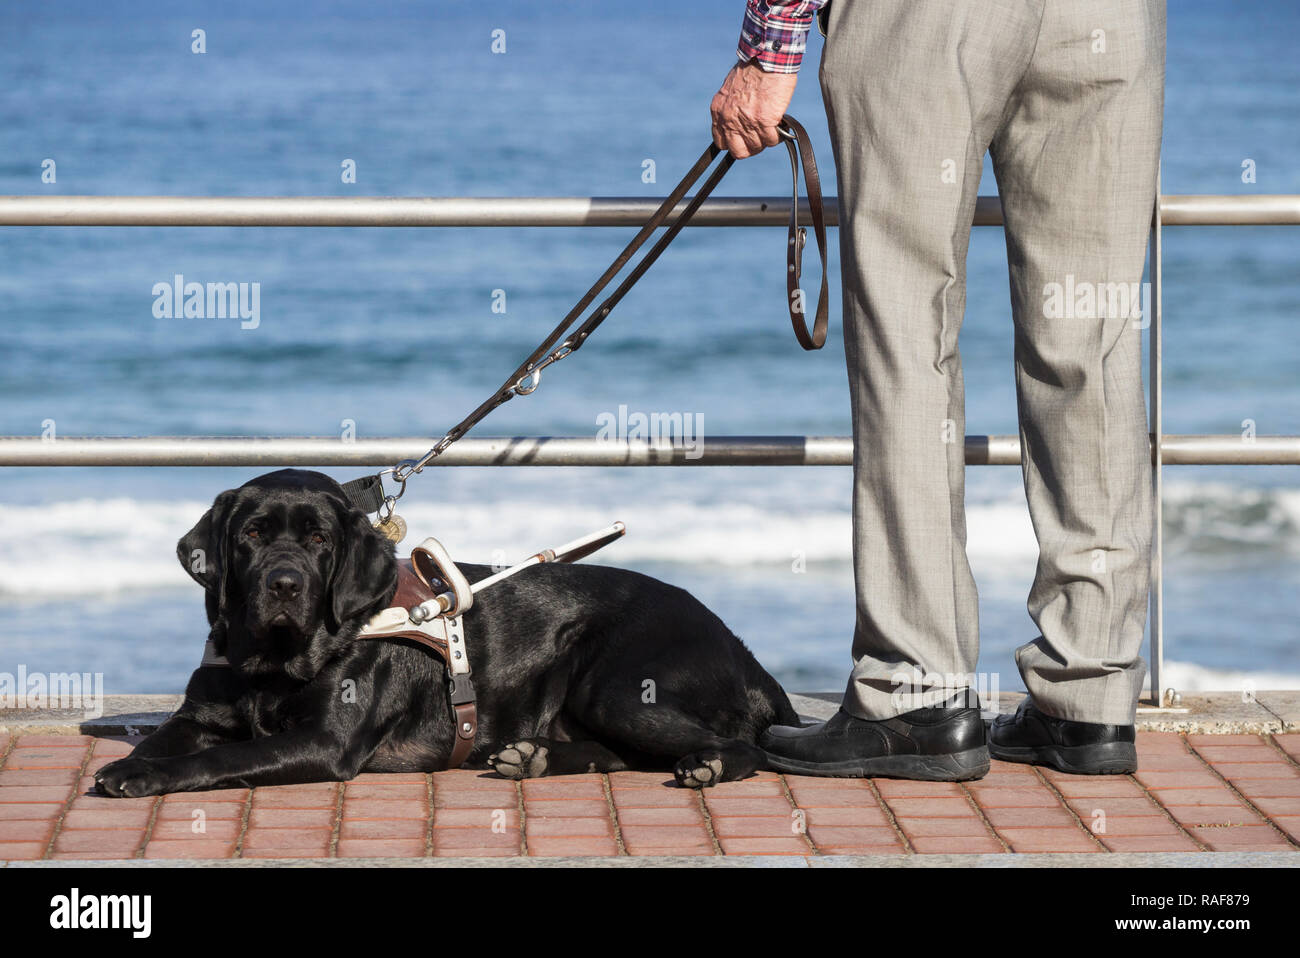 Blind Man Dog Stock Photos & Blind Man Dog Stock Images - Alamy